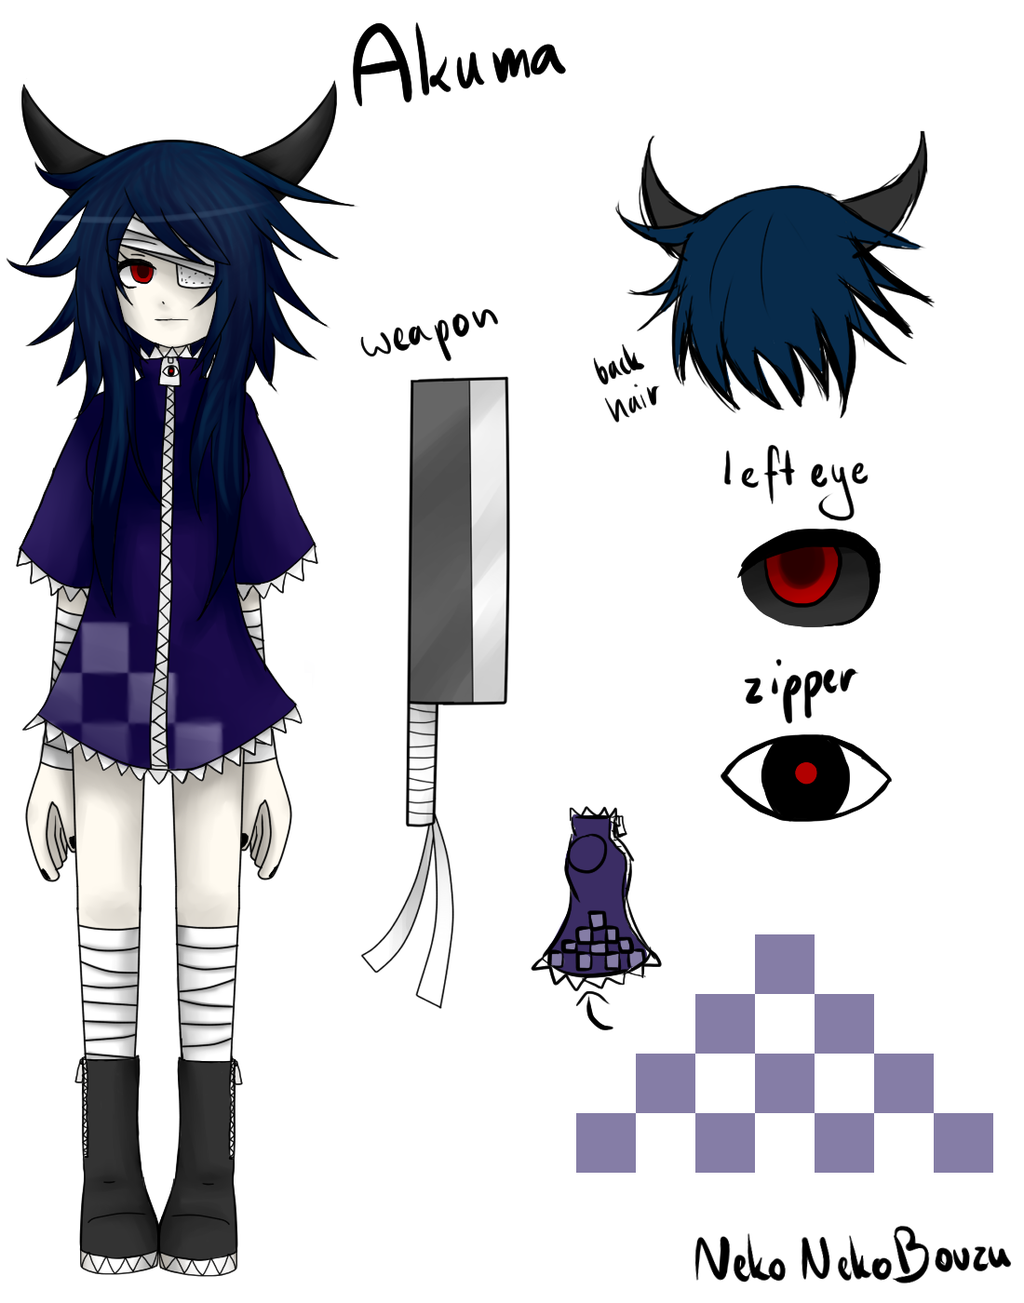 Made another creepypasta oc because why not? Description